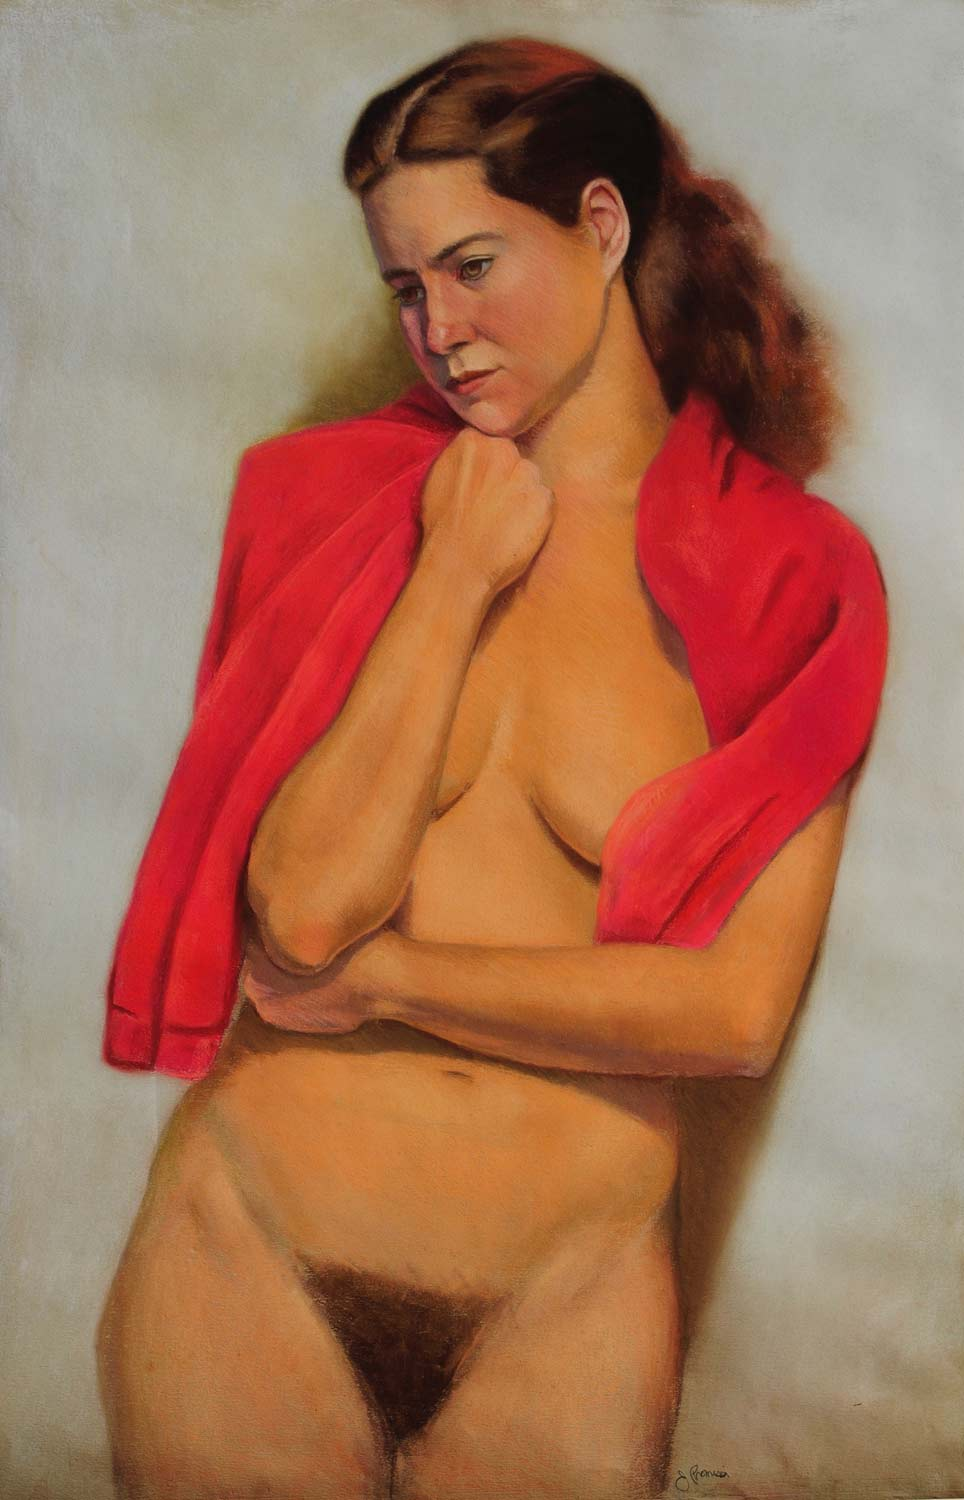 Standing Nude, 36 x 24, Pastel on paper